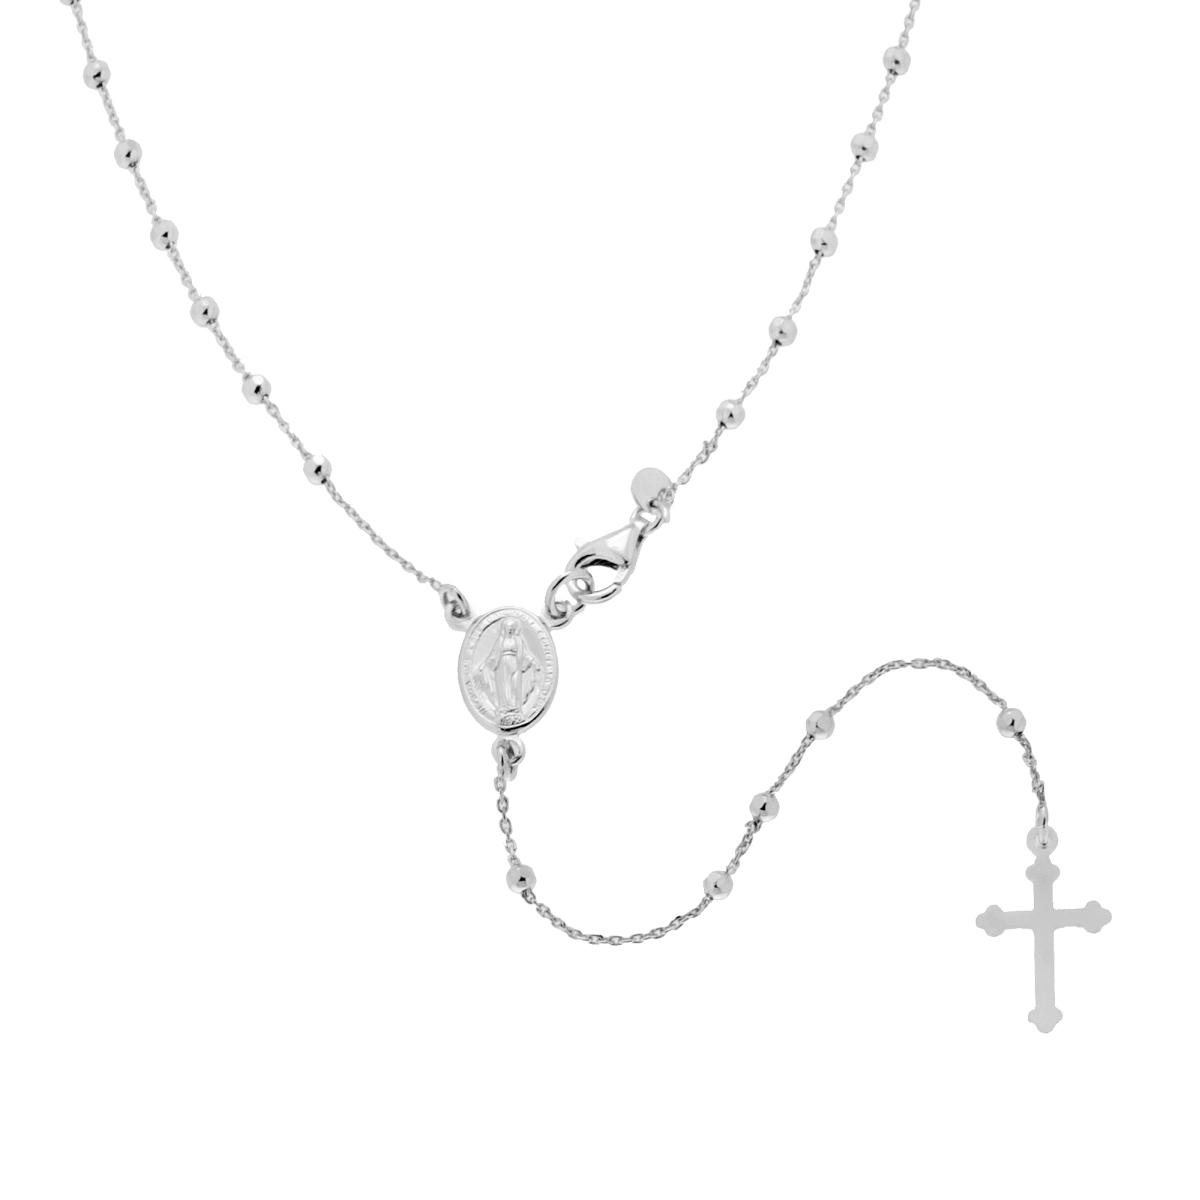 Collana Rosario cm 50 con Palline Diamantate mm 2,5 in ARGENTO 925 Rodiato